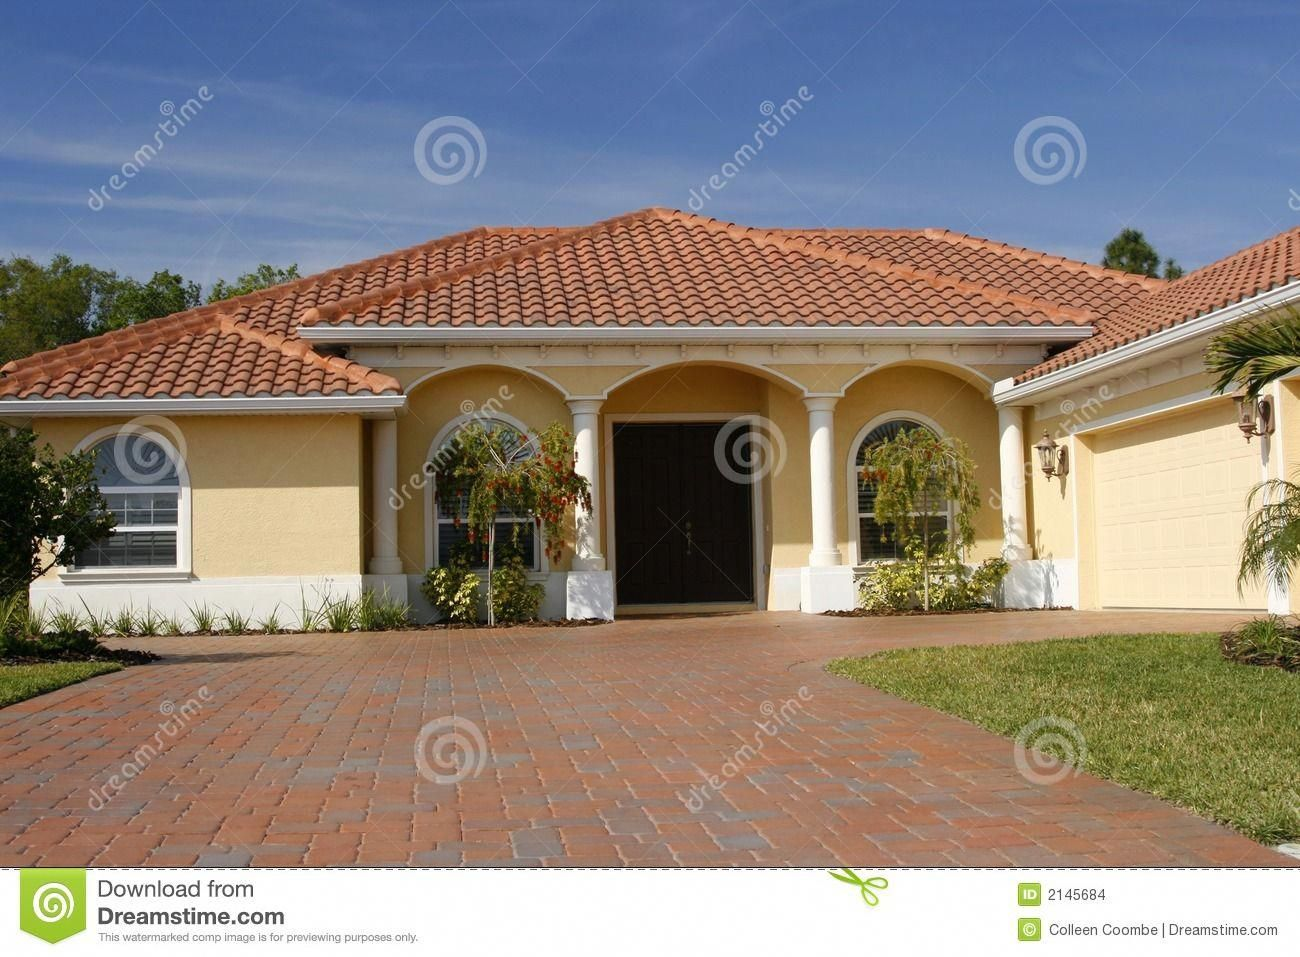 Green Roofs And Great Savings Red Roof House Stucco Homes House Roof